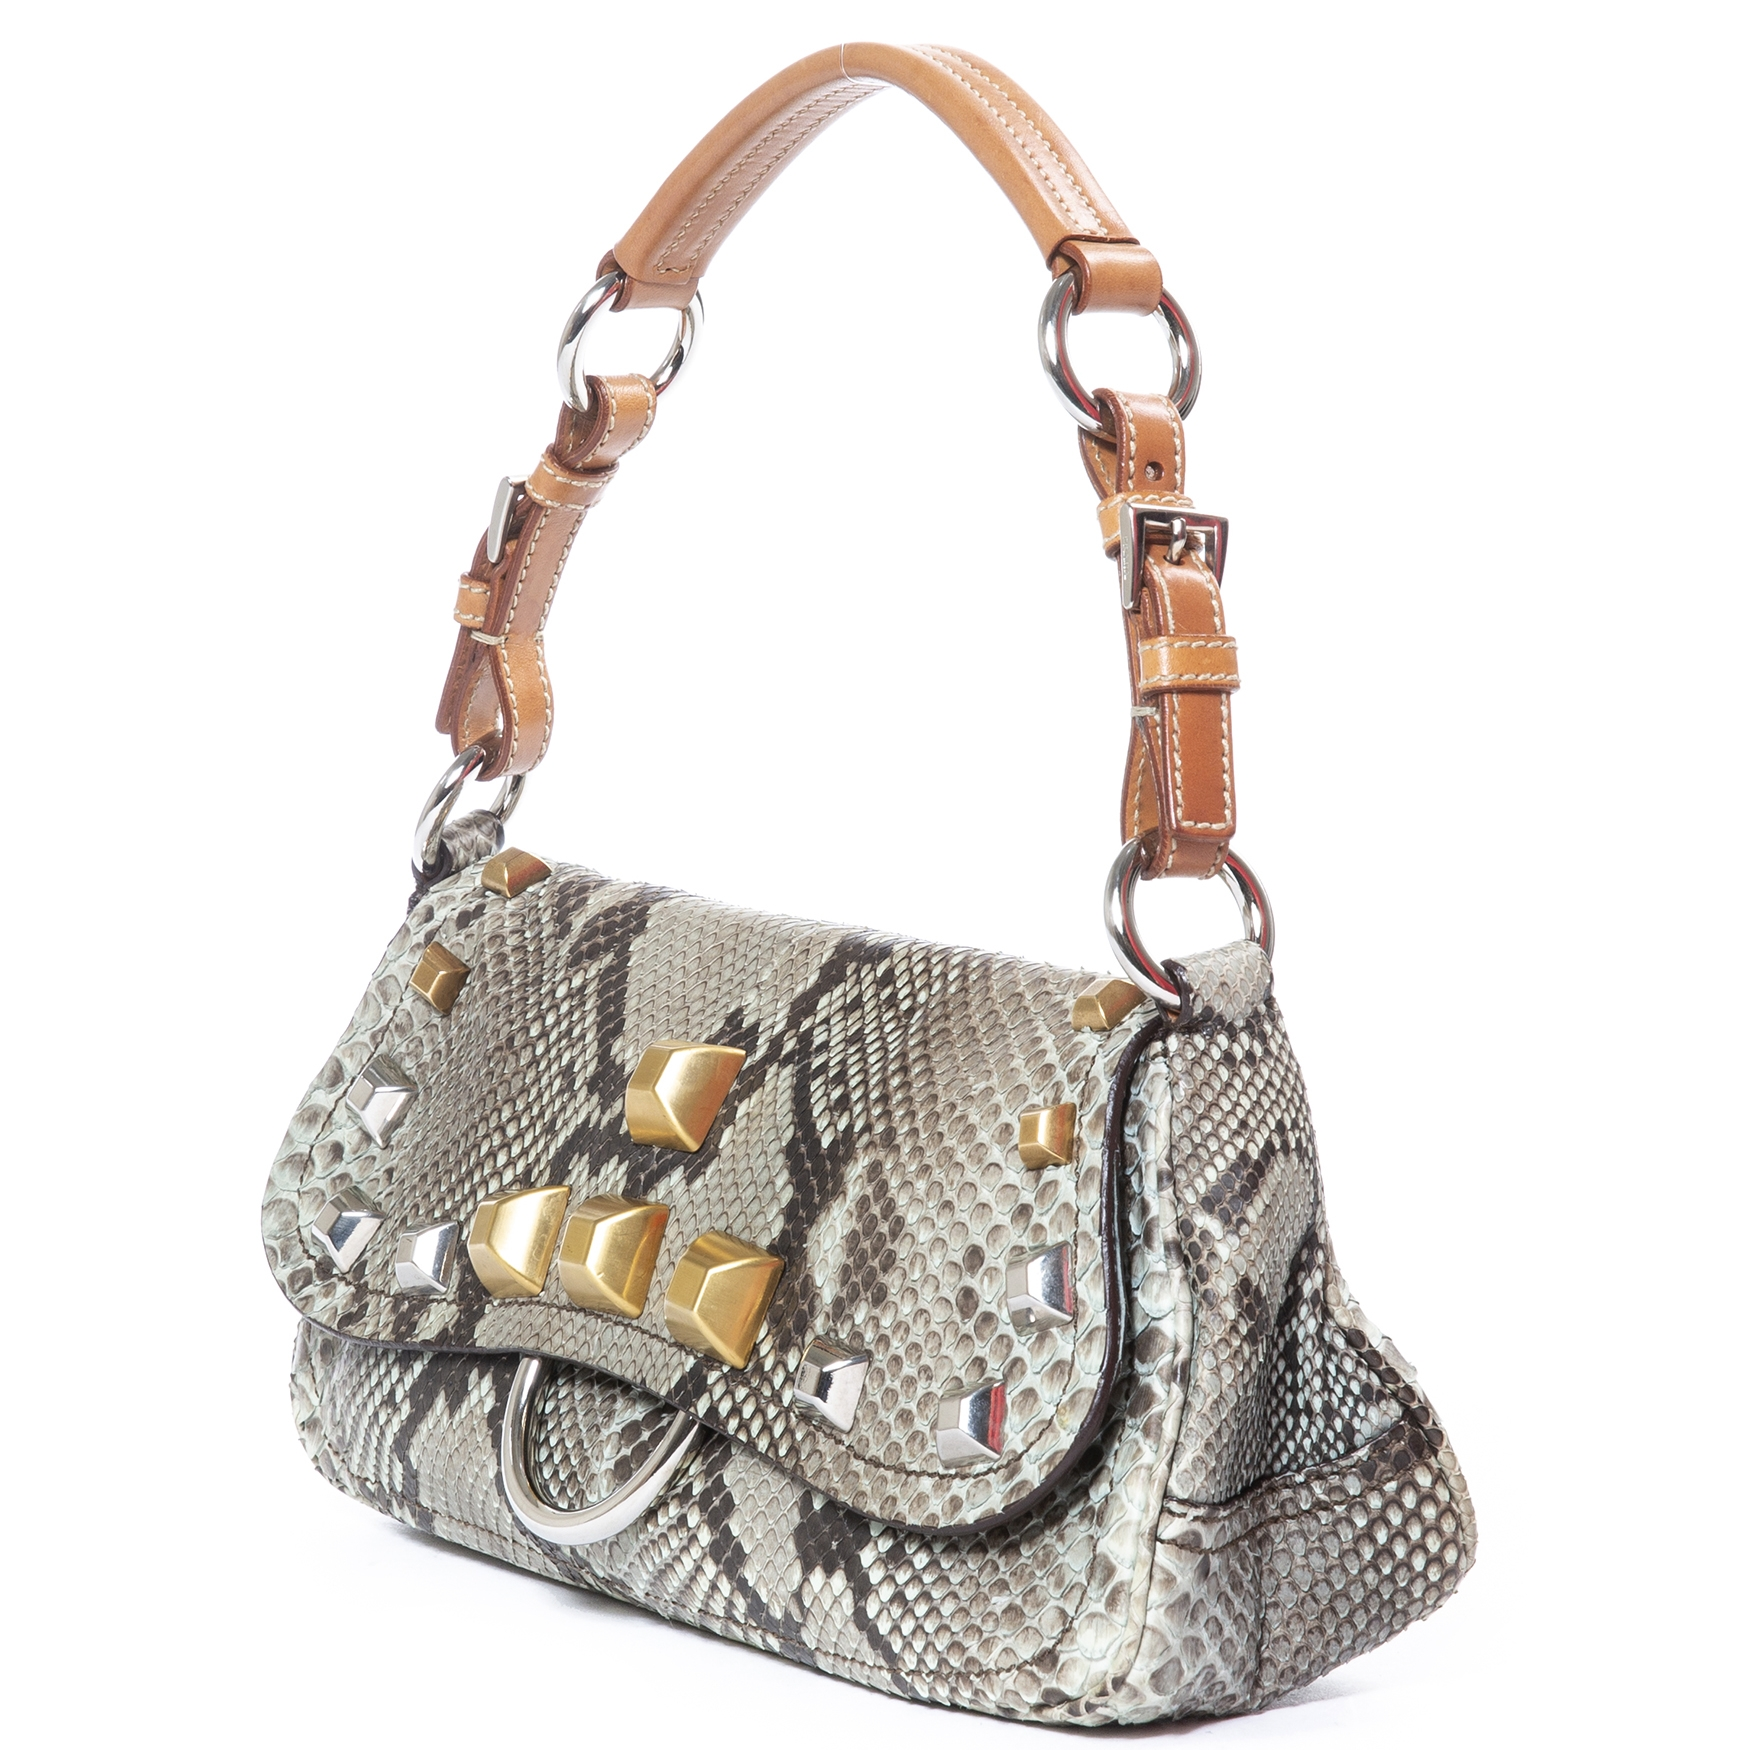 Are you looking for an iconic Prada Python Stud Shoulder Bag?